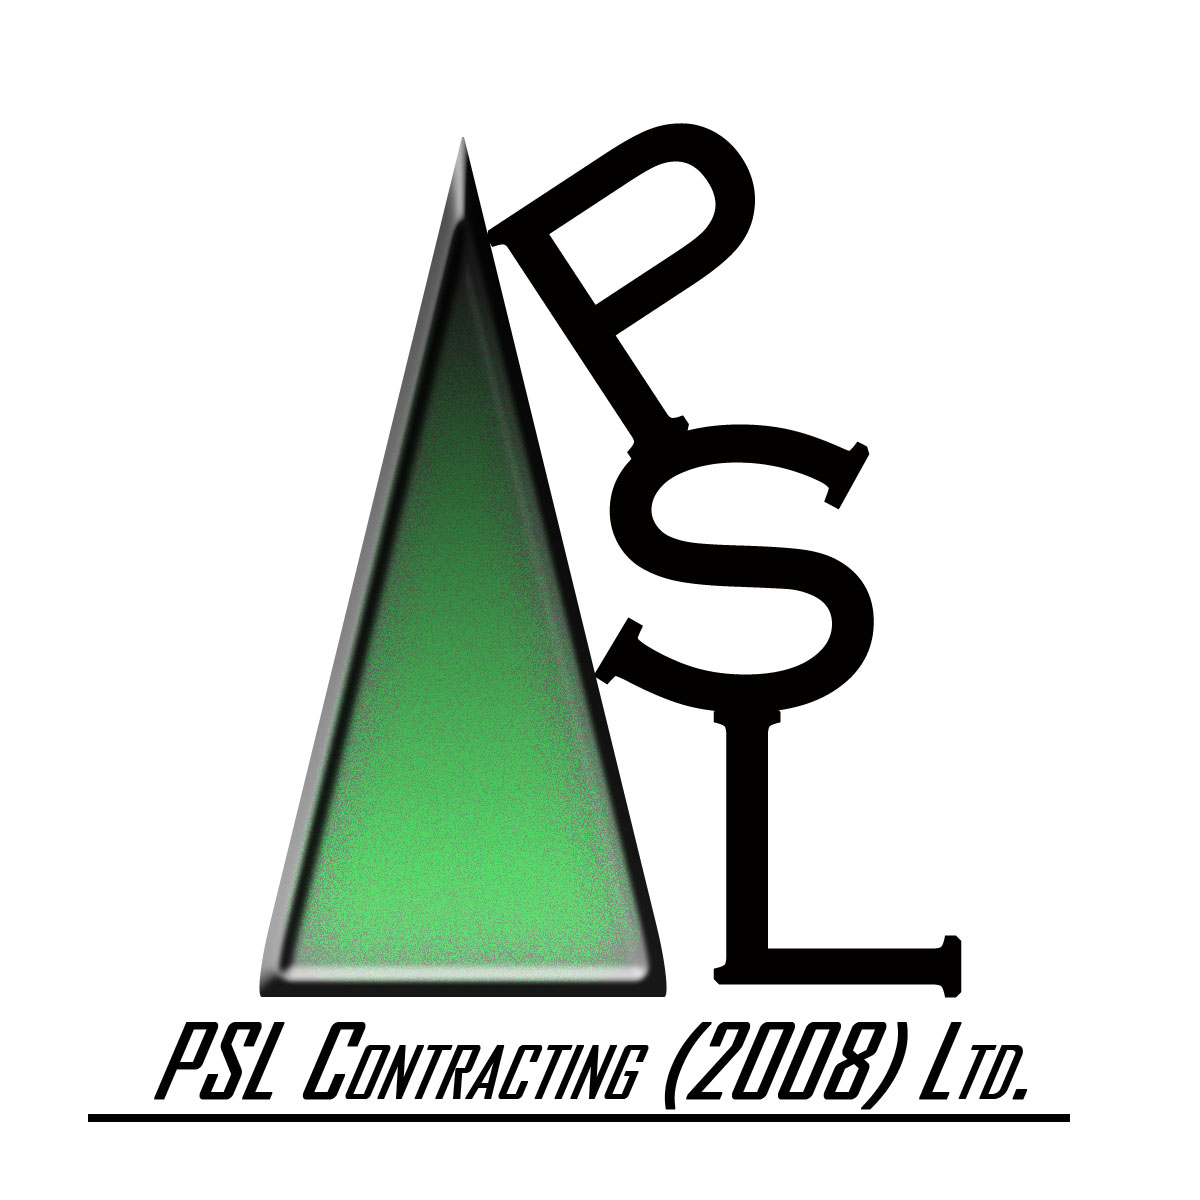 Logo Design by Moag - Entry No. 70 in the Logo Design Contest PSL Contracting (2008) Ltd. Logo Design.